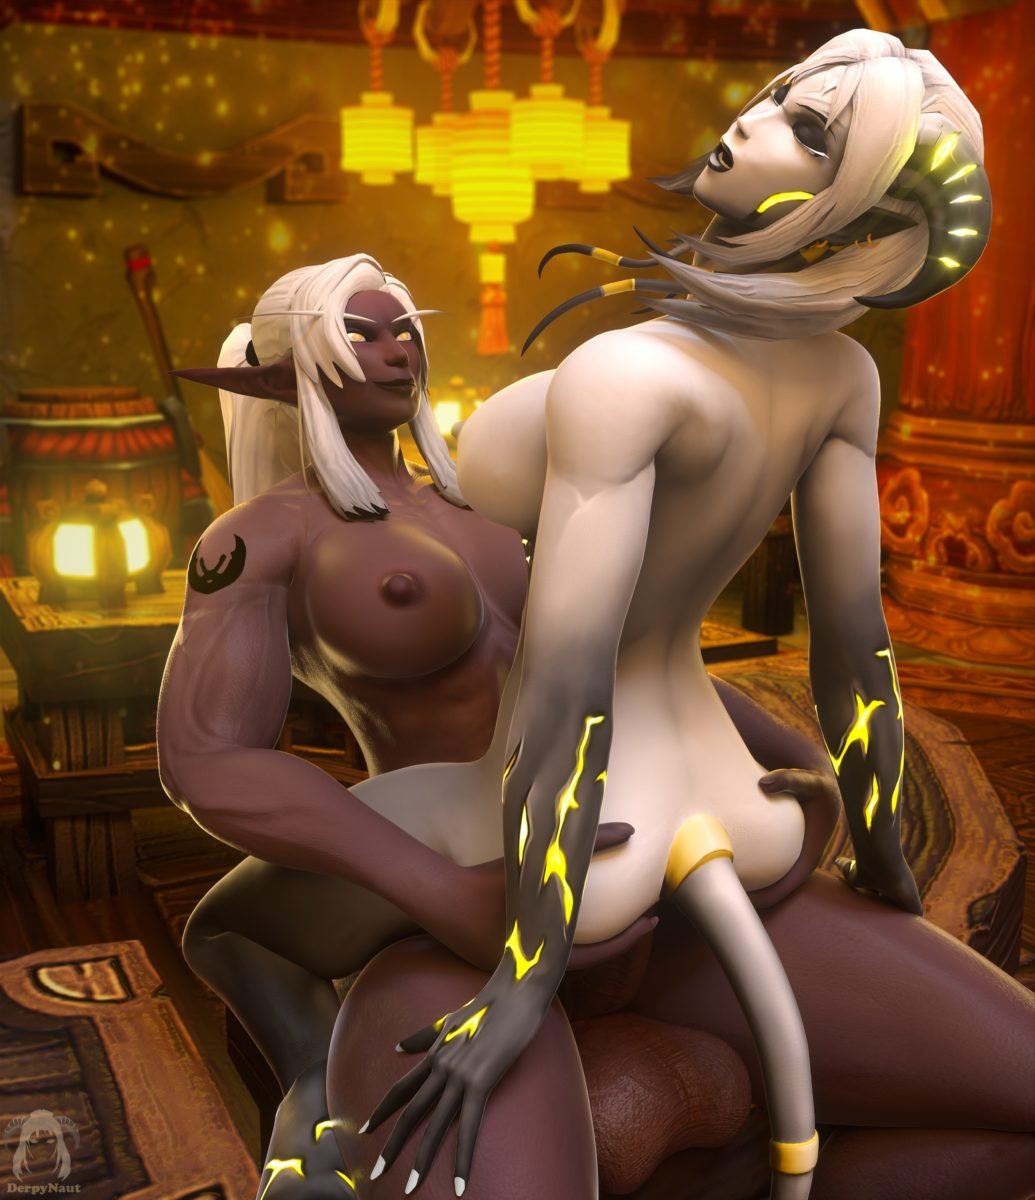 Derpynaut - Futanari draenei night elf world of warcraft hentai rule 34 muscle porn